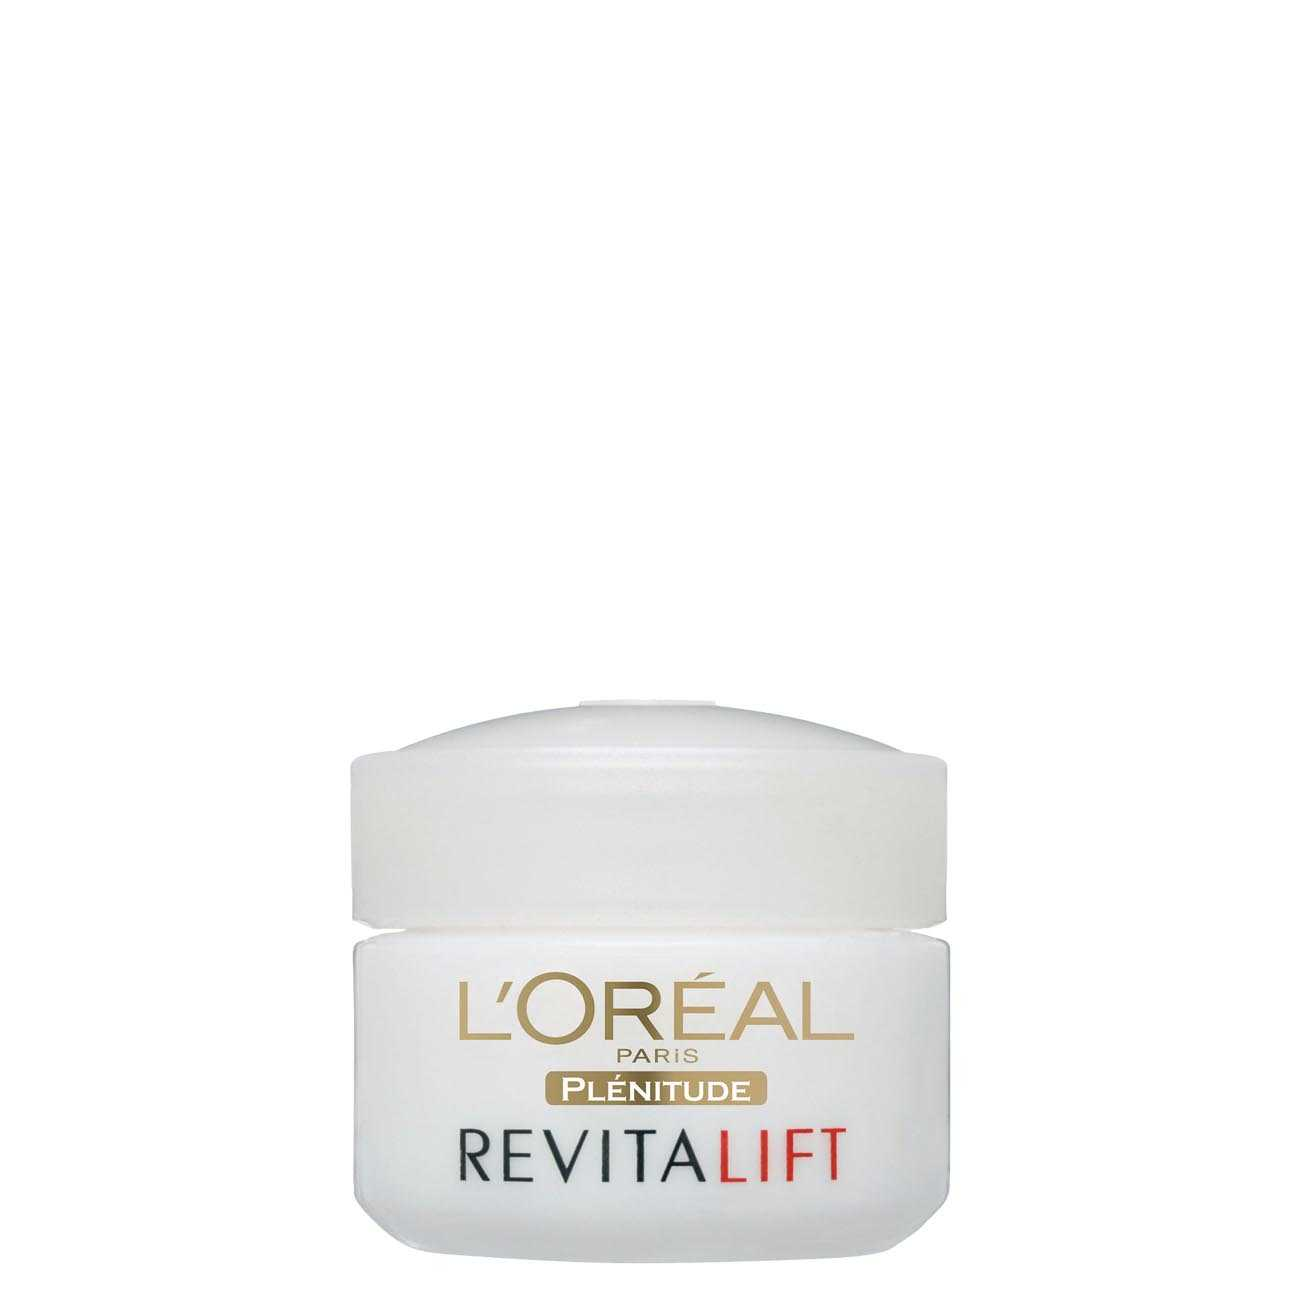 PLENITUDE REVITALIFT EYE CREAM 15 ML poza